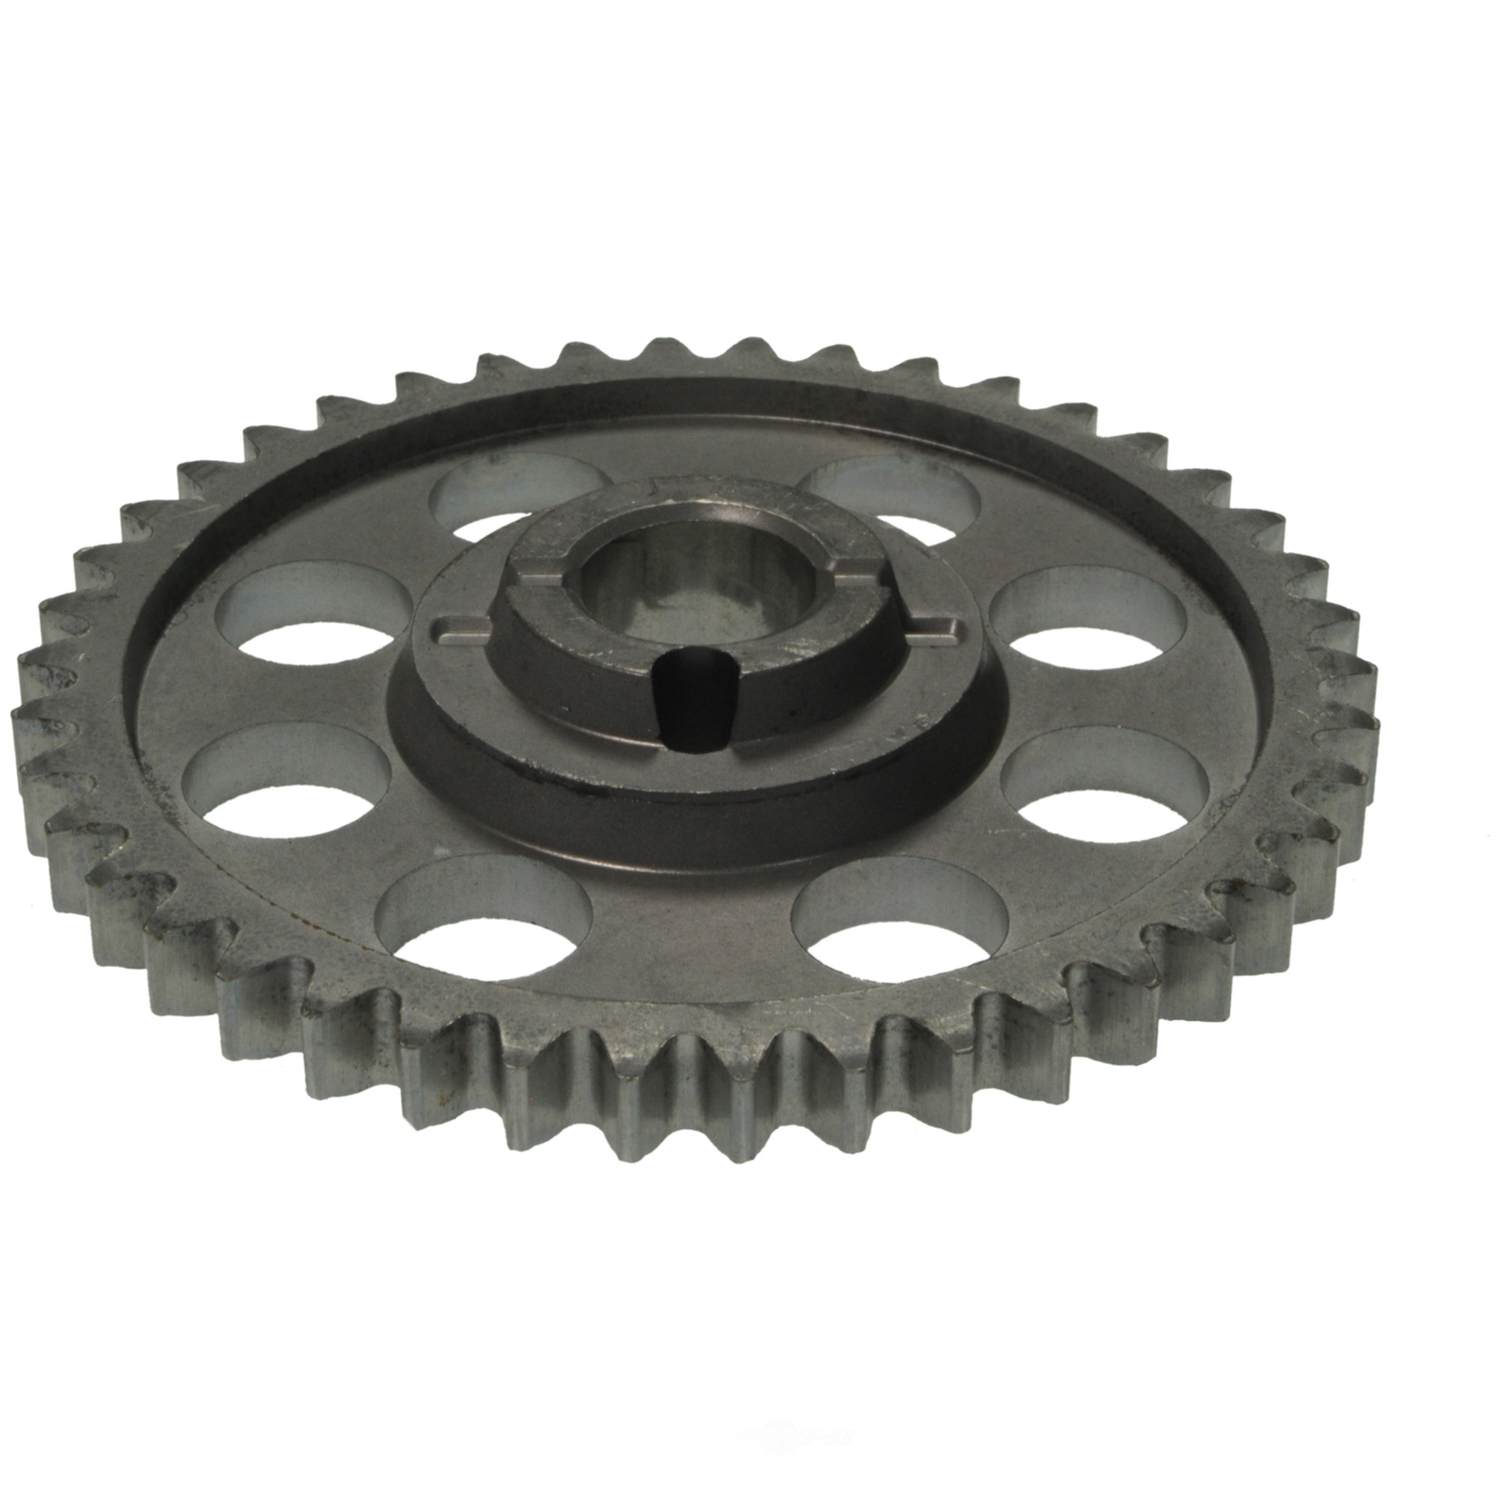 SEALED POWER - Engine Timing Camshaft Sprocket - SEA 223-430